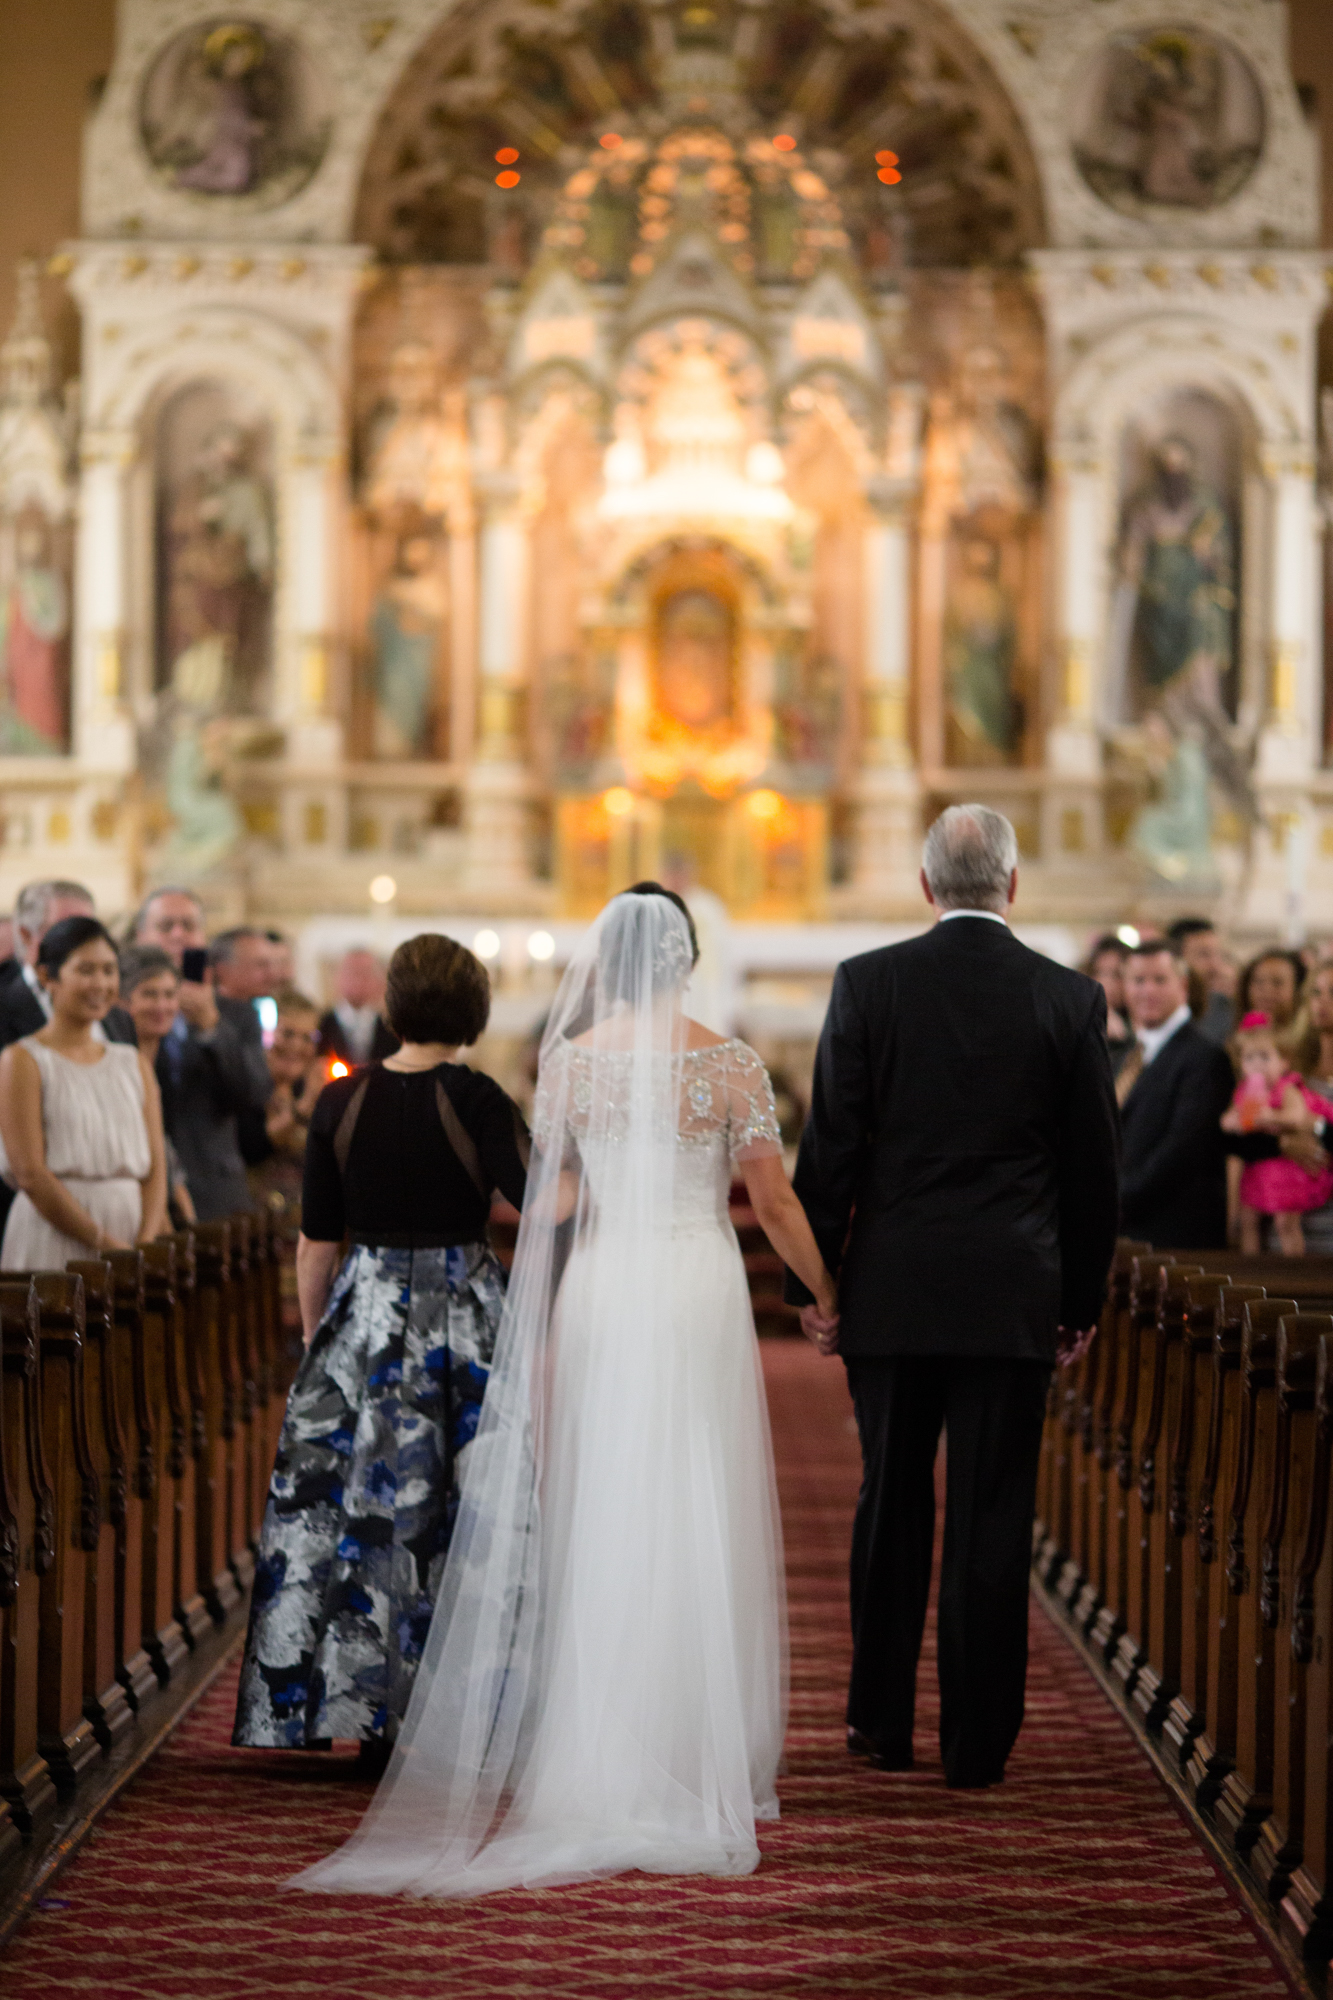 Bride and her parents walk down the aisle at St Michaels Old Town wedding ceremony in Chicago